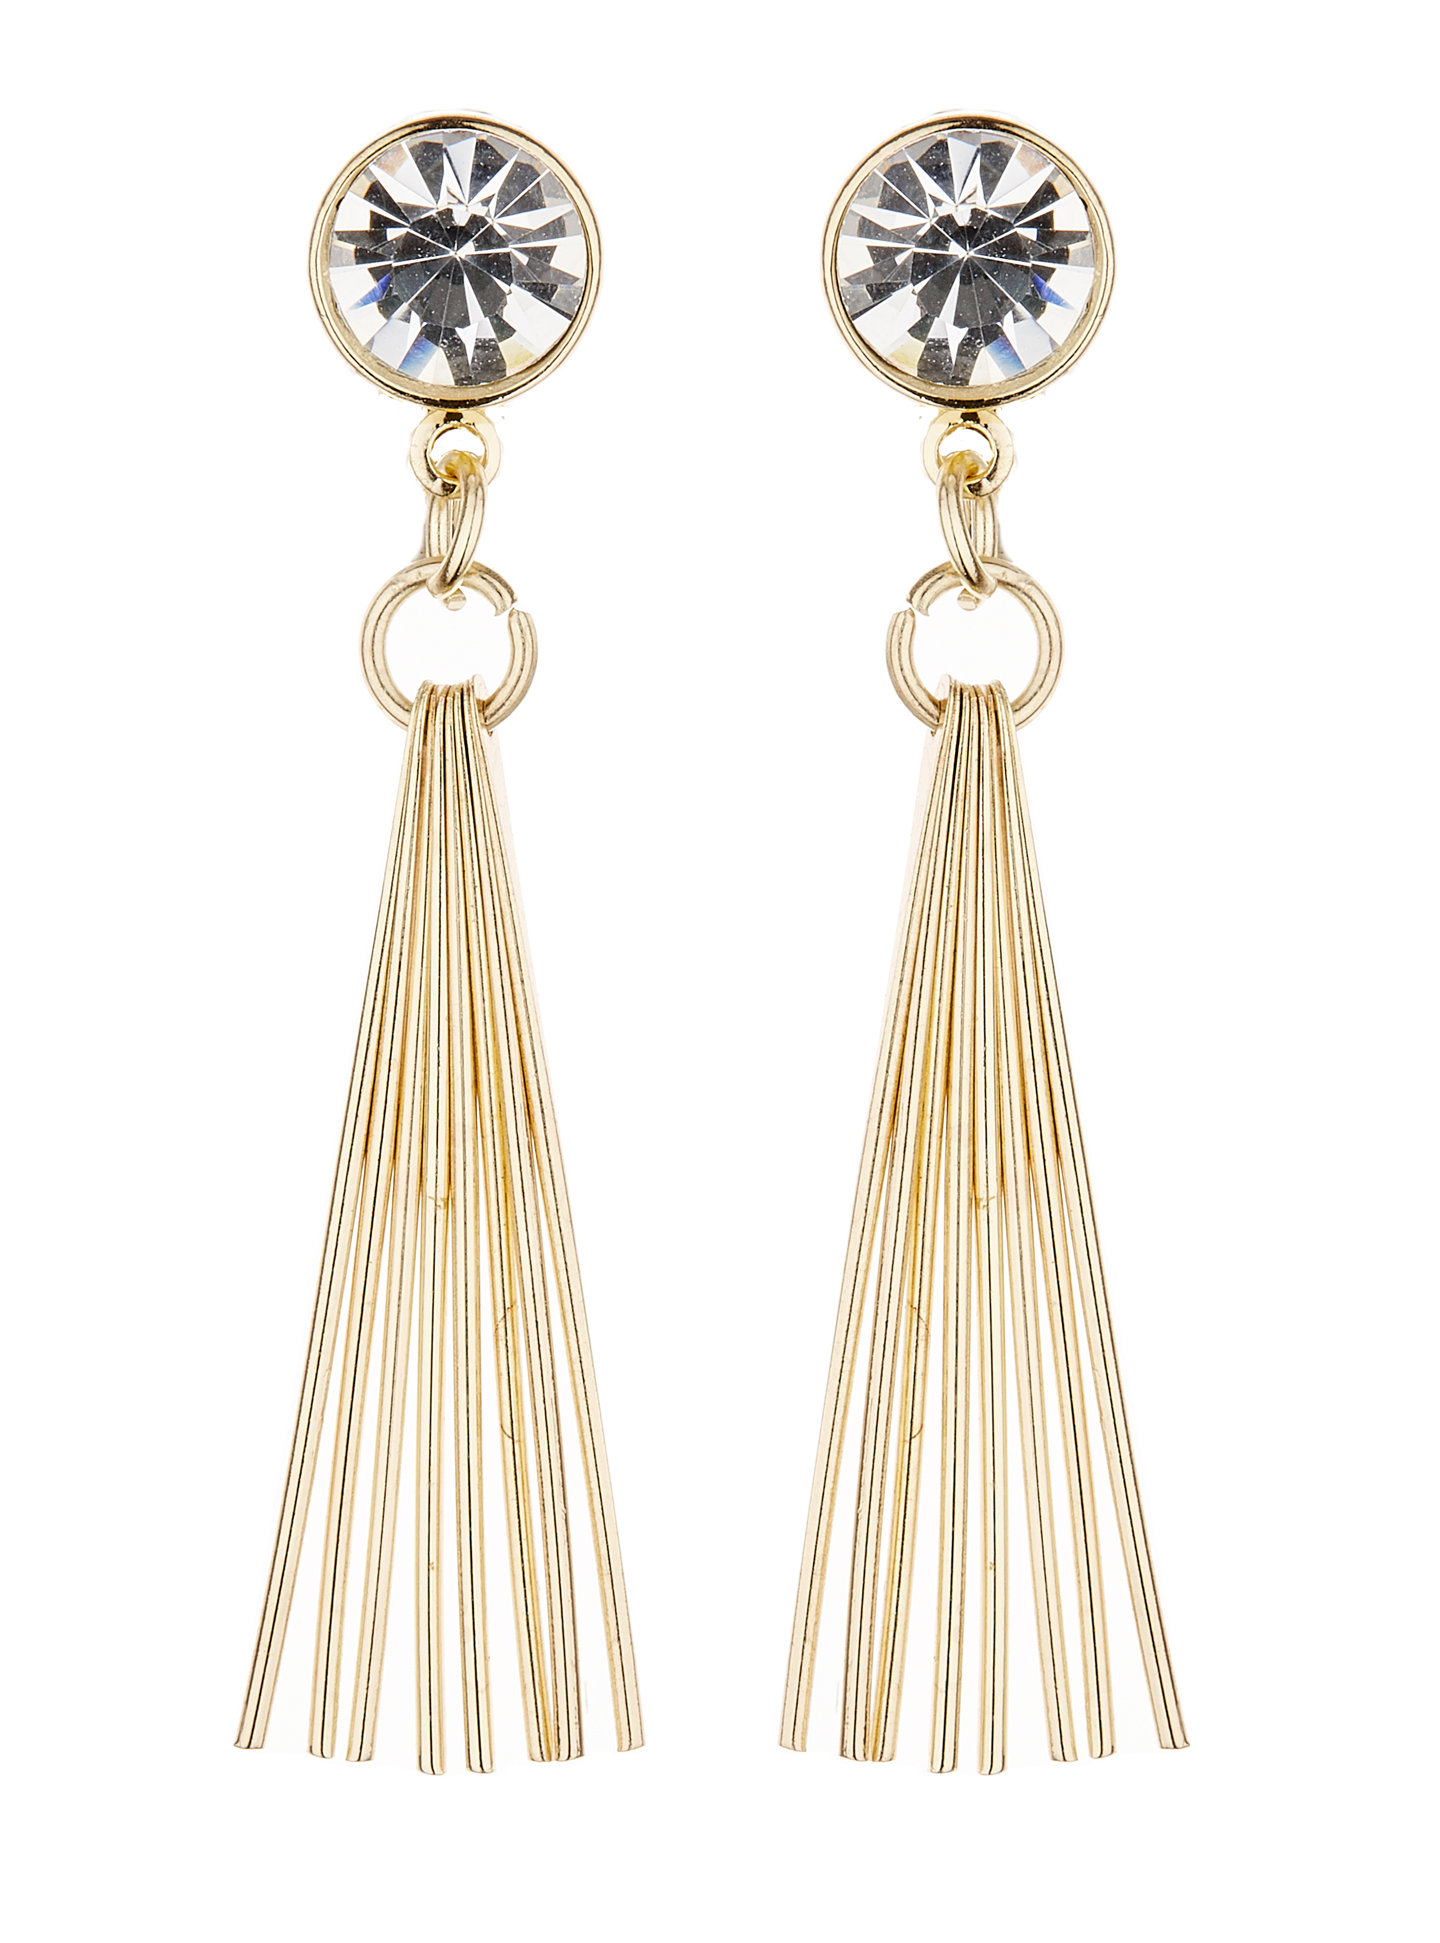 Clip On Earrings - Kala - gold drop earring with a large clear crystal